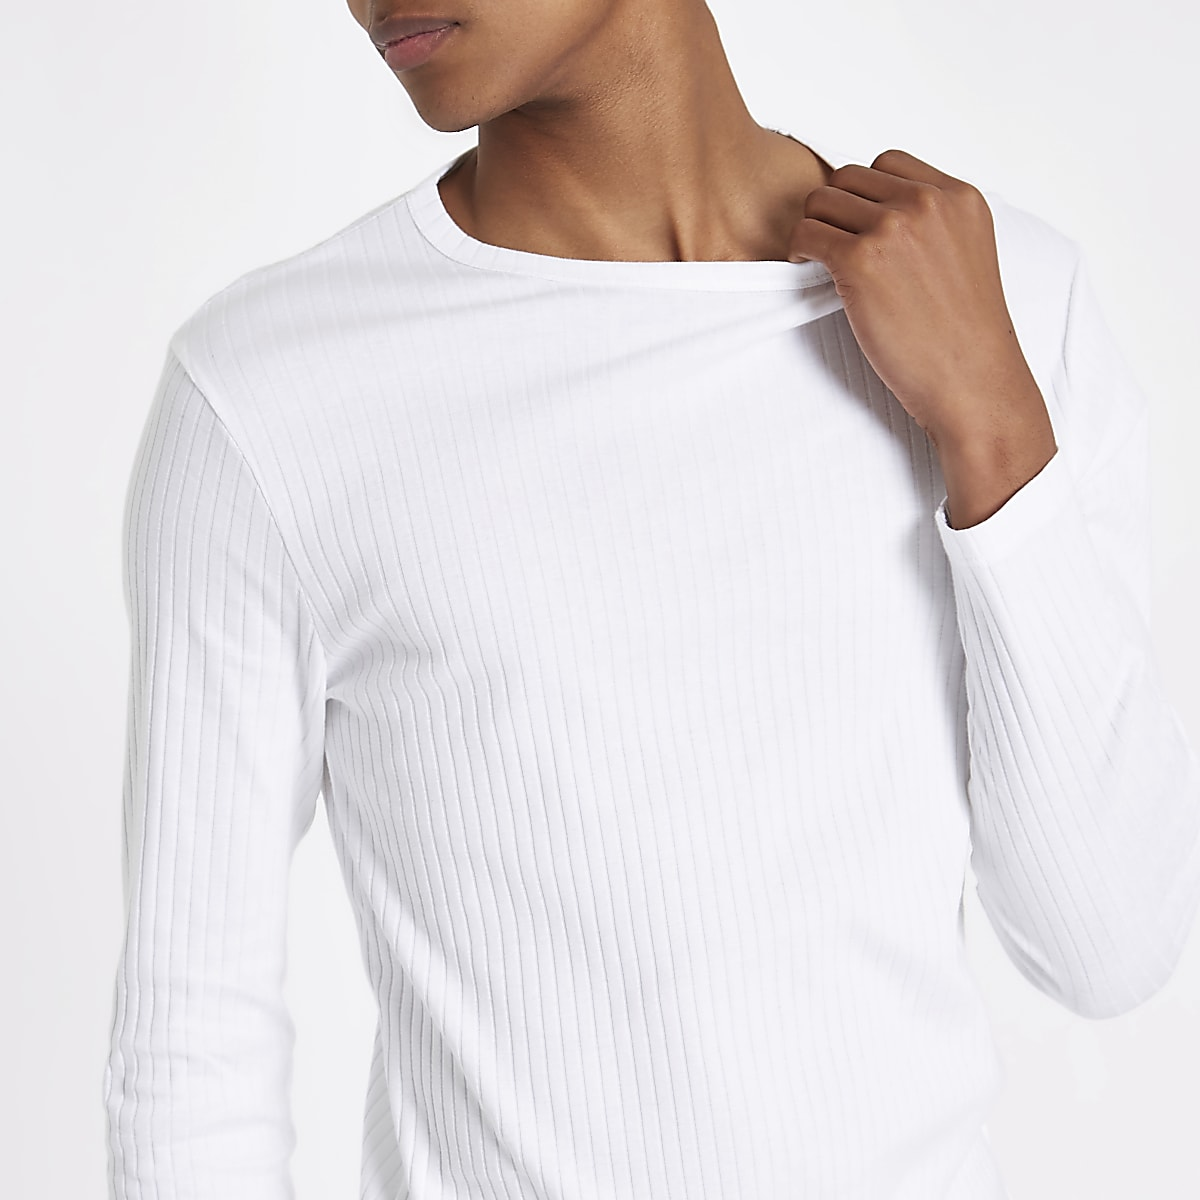 55f5e59d6 White ribbed slim fit long sleeve T-shirt - Long Sleeve T-Shirts - T-Shirts    Vests - men